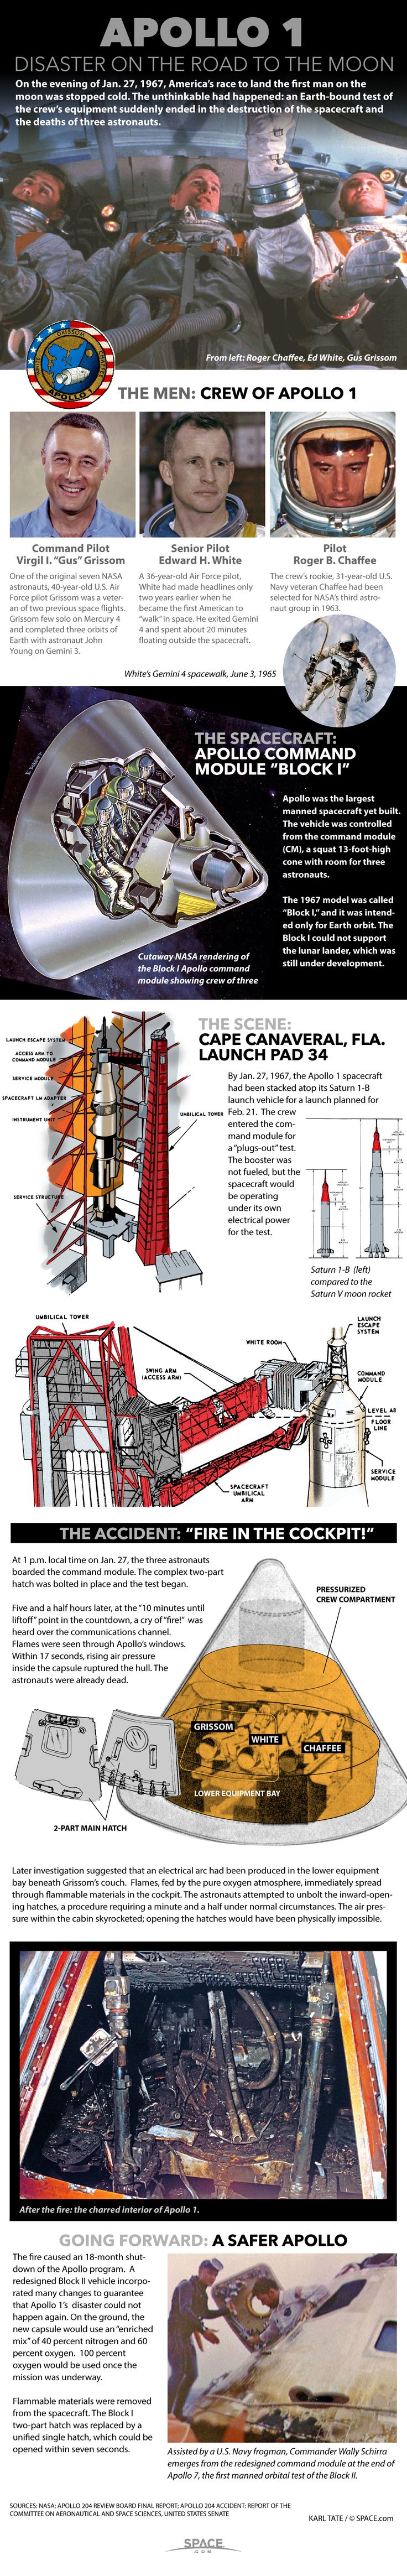 Remembering the Apollo 1 Fire (Infographic) | NASA Space Disasters & Gus Grissom, Roger Chaffee, Ed White | Human Spaceflight Risk & NASA Spacecraft Safety